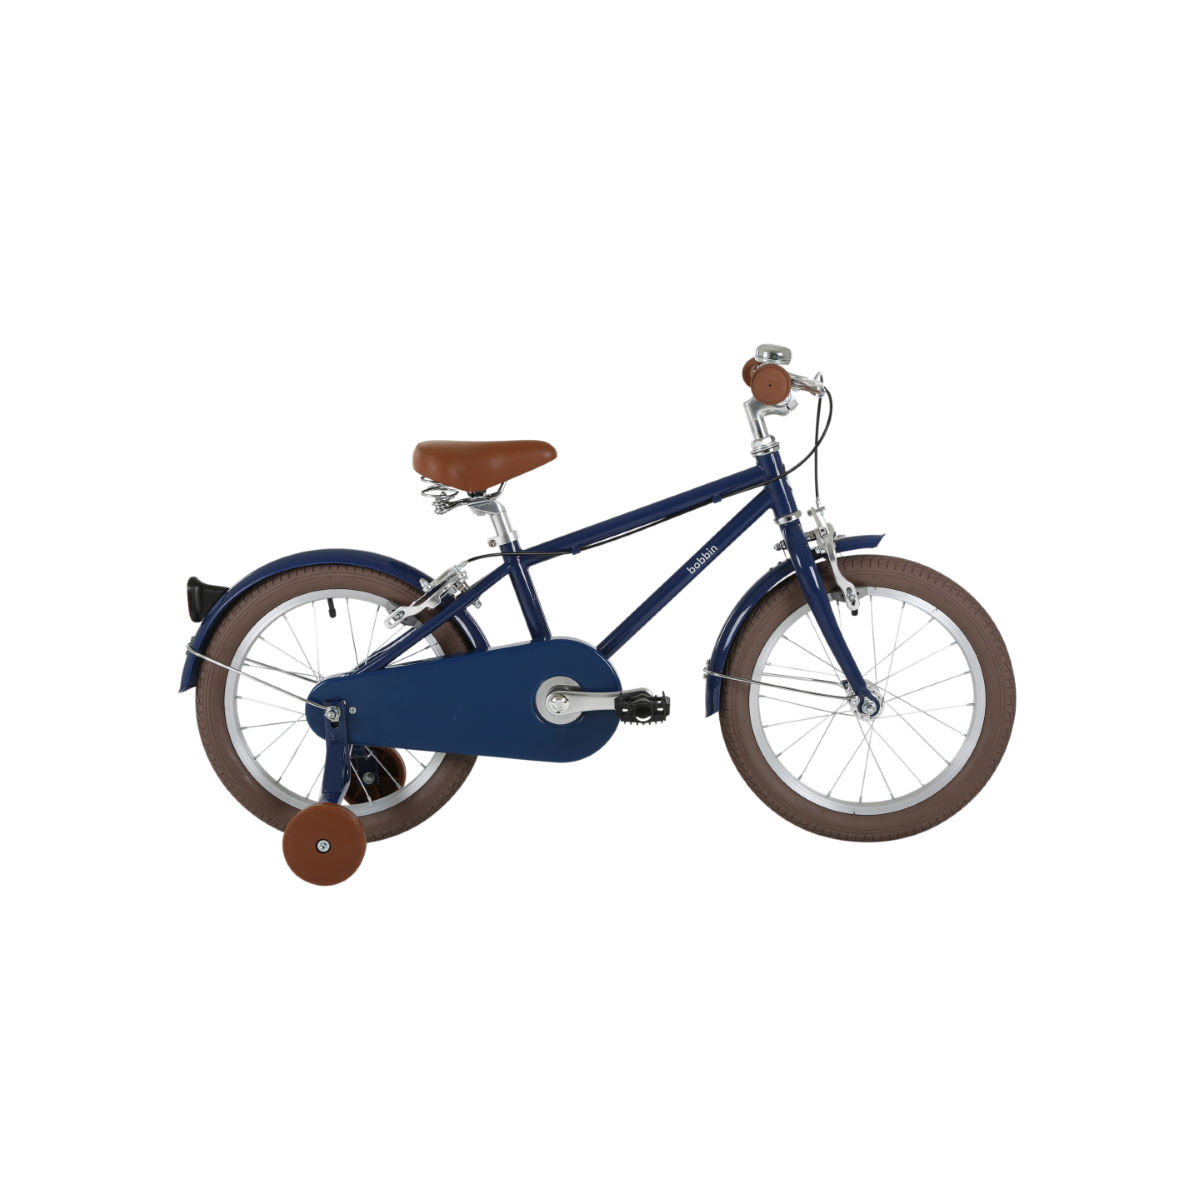 Bobbin Moonbug 16 (2017) Kids Bike   Kids Bikes  Under 7